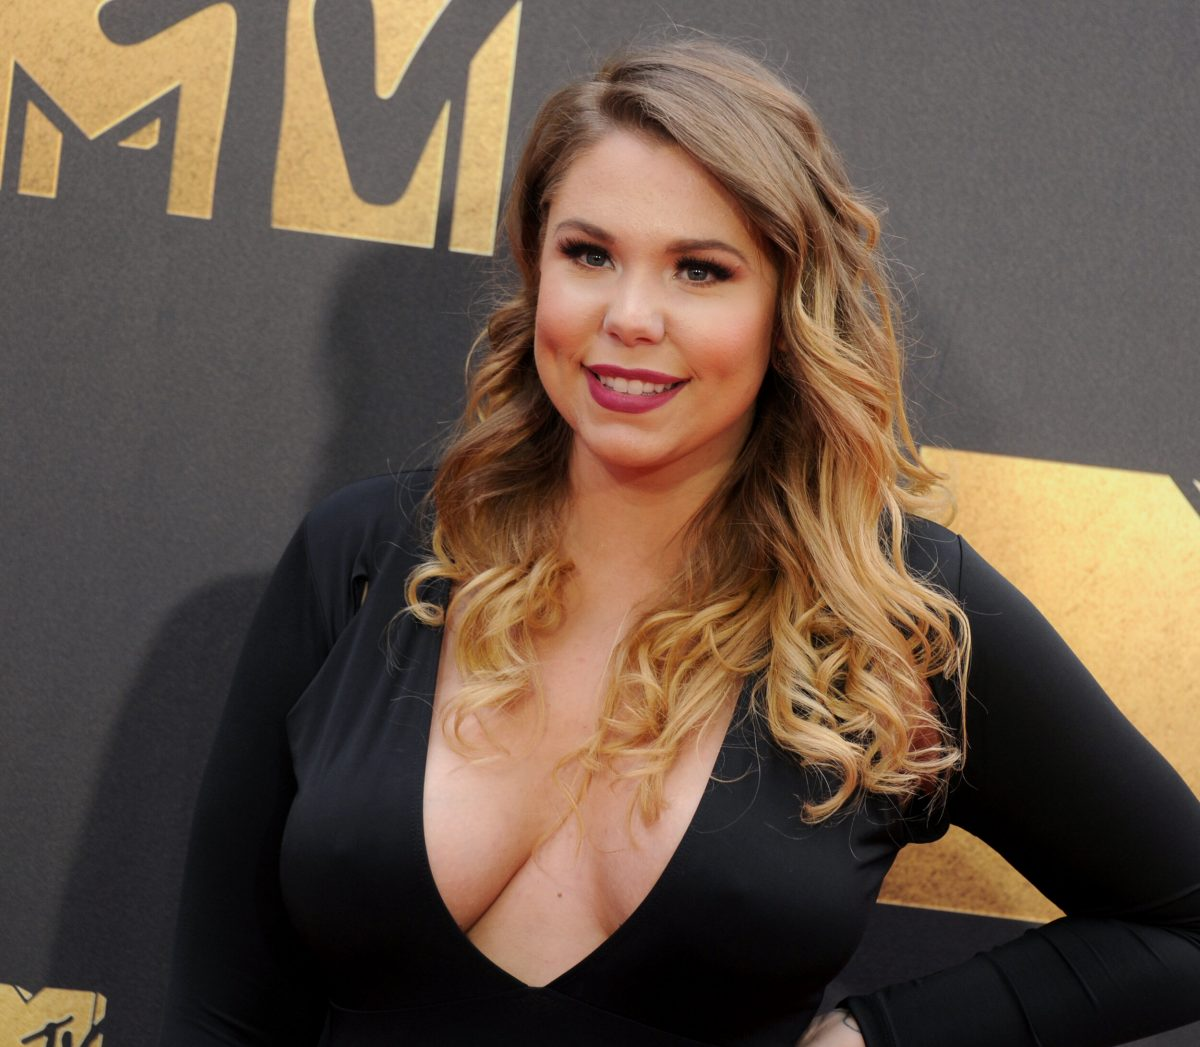 Kailyn Lowry at the 2016 MTV Movie Awards